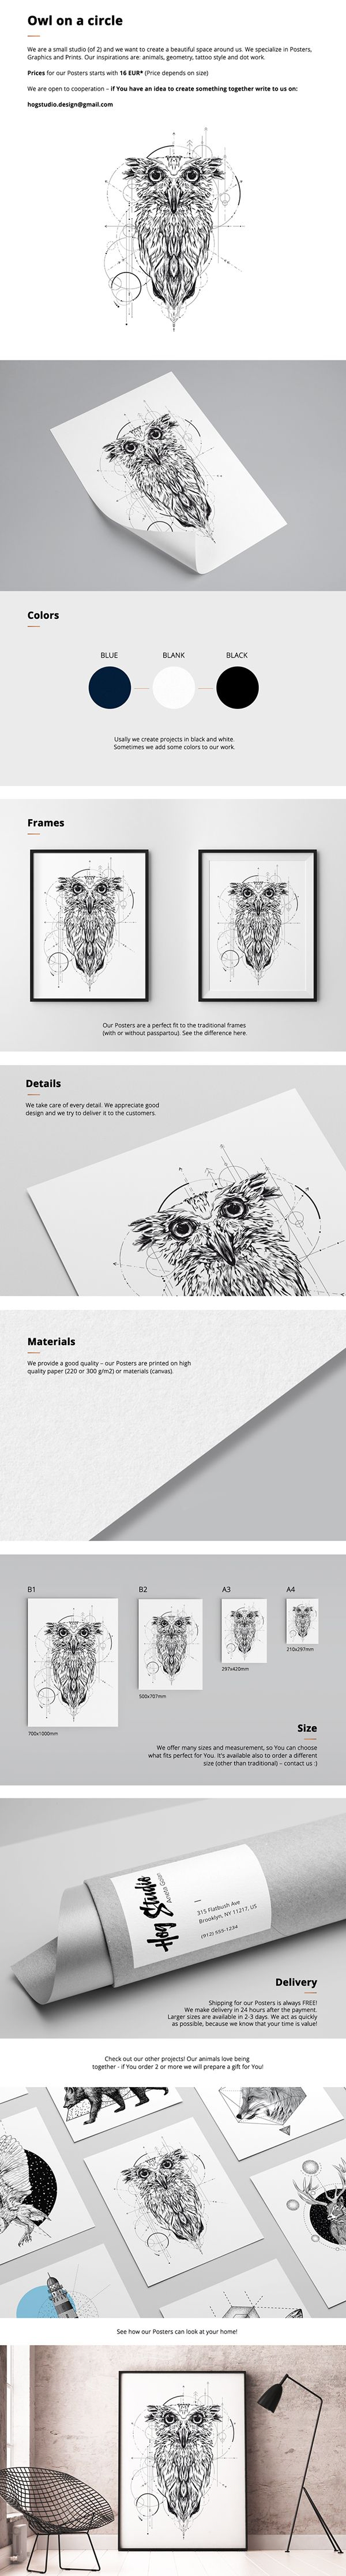 """Poster """"Owl on a circle"""" We create a beautiful space around us. We specialize in Posters, Graphics and Prints. Contact: hogstudio.design@gmail.com"""